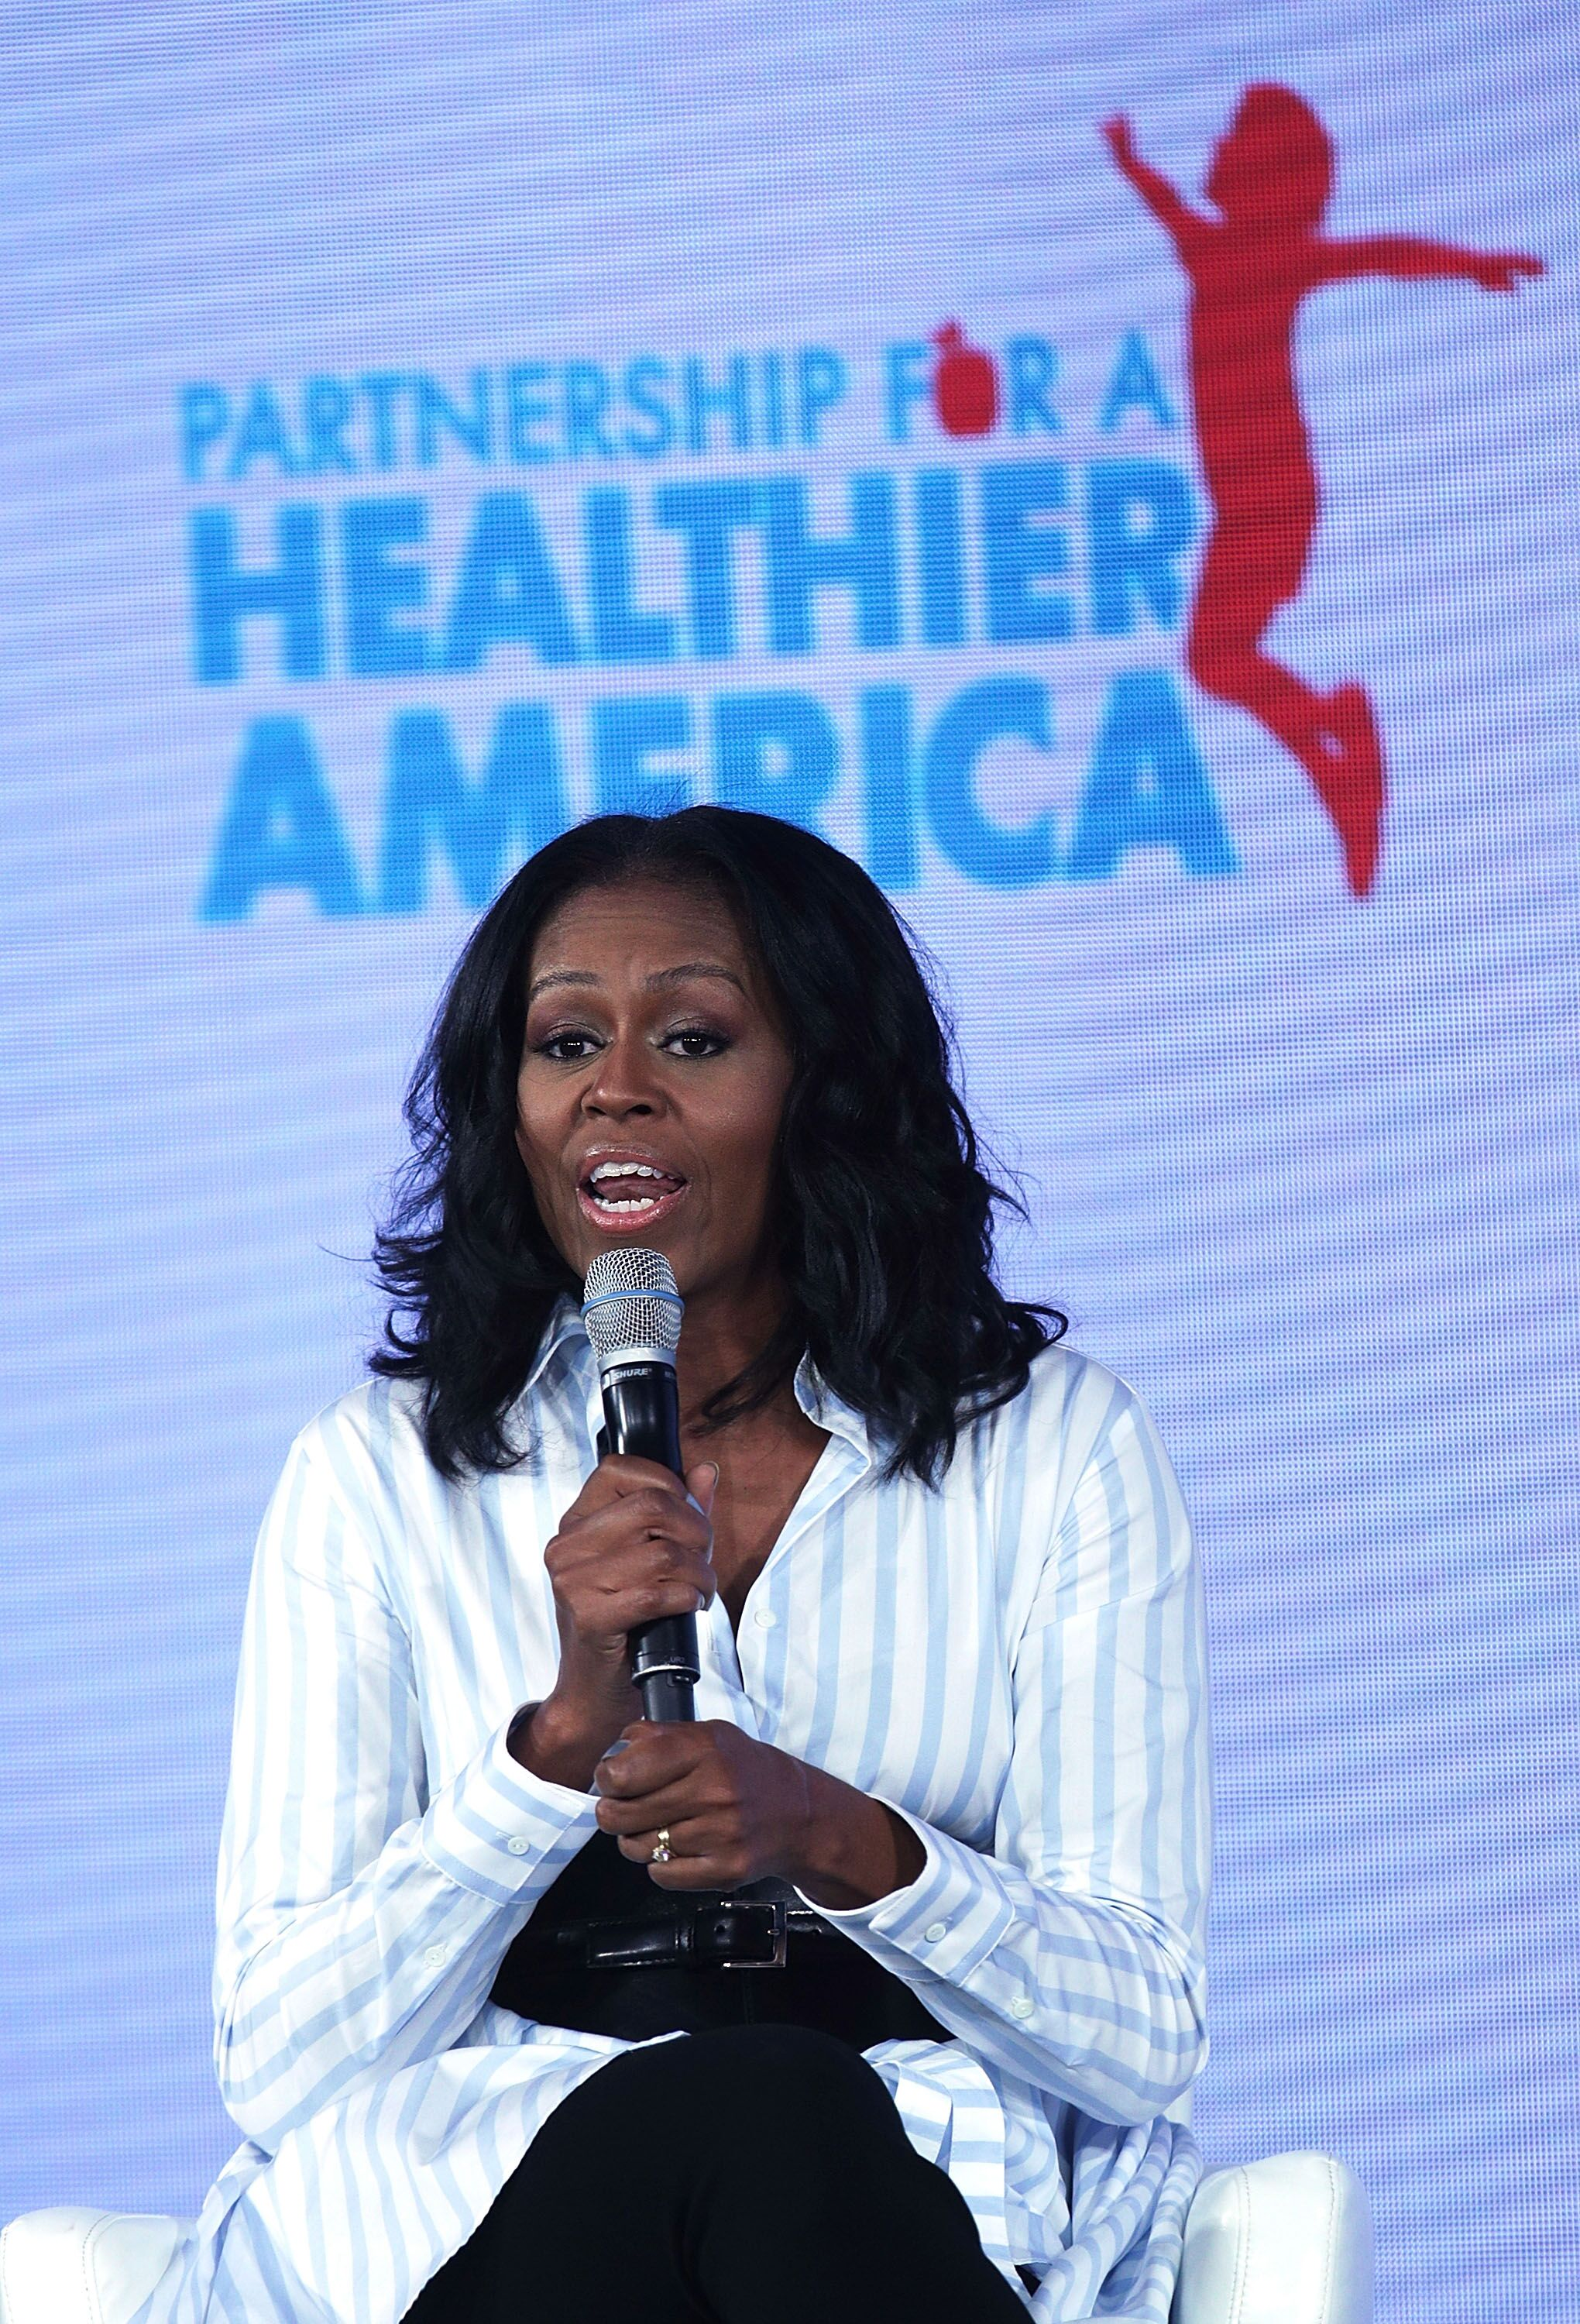 Michelle Obama speaks during the Partnership for a Healthier America Summit May 12, 2017 in Washington, DC   Photo: Getty Images